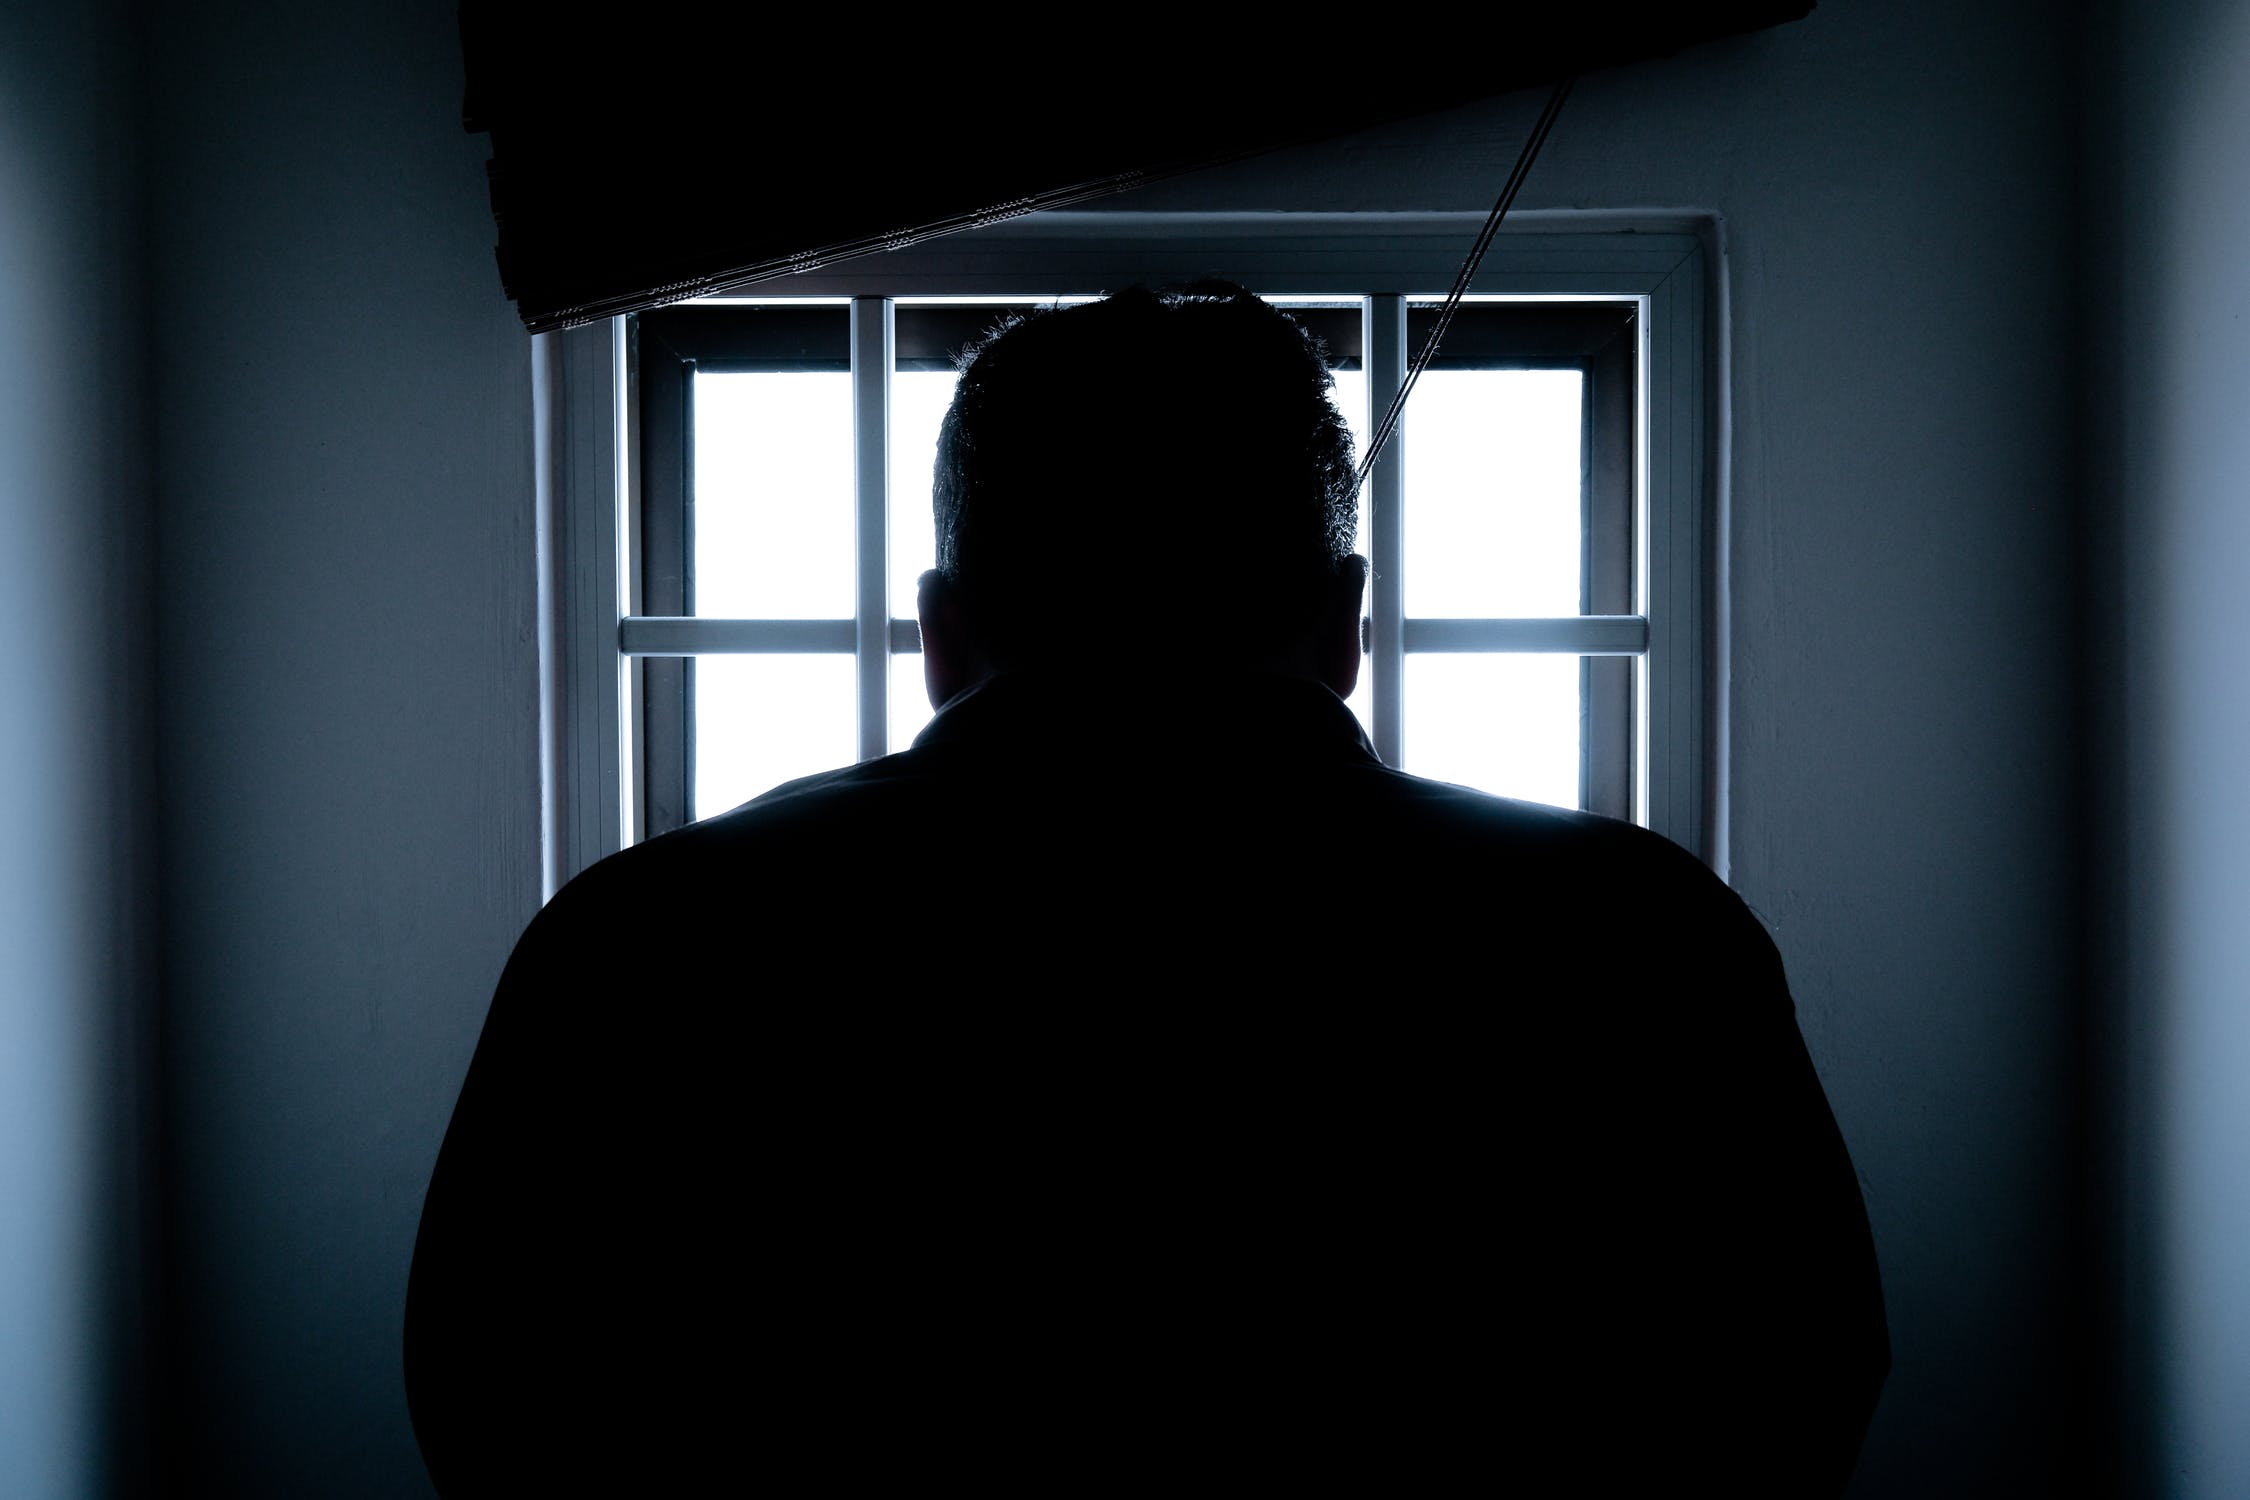 rear-view-of-a-silhouette-man-in-jail